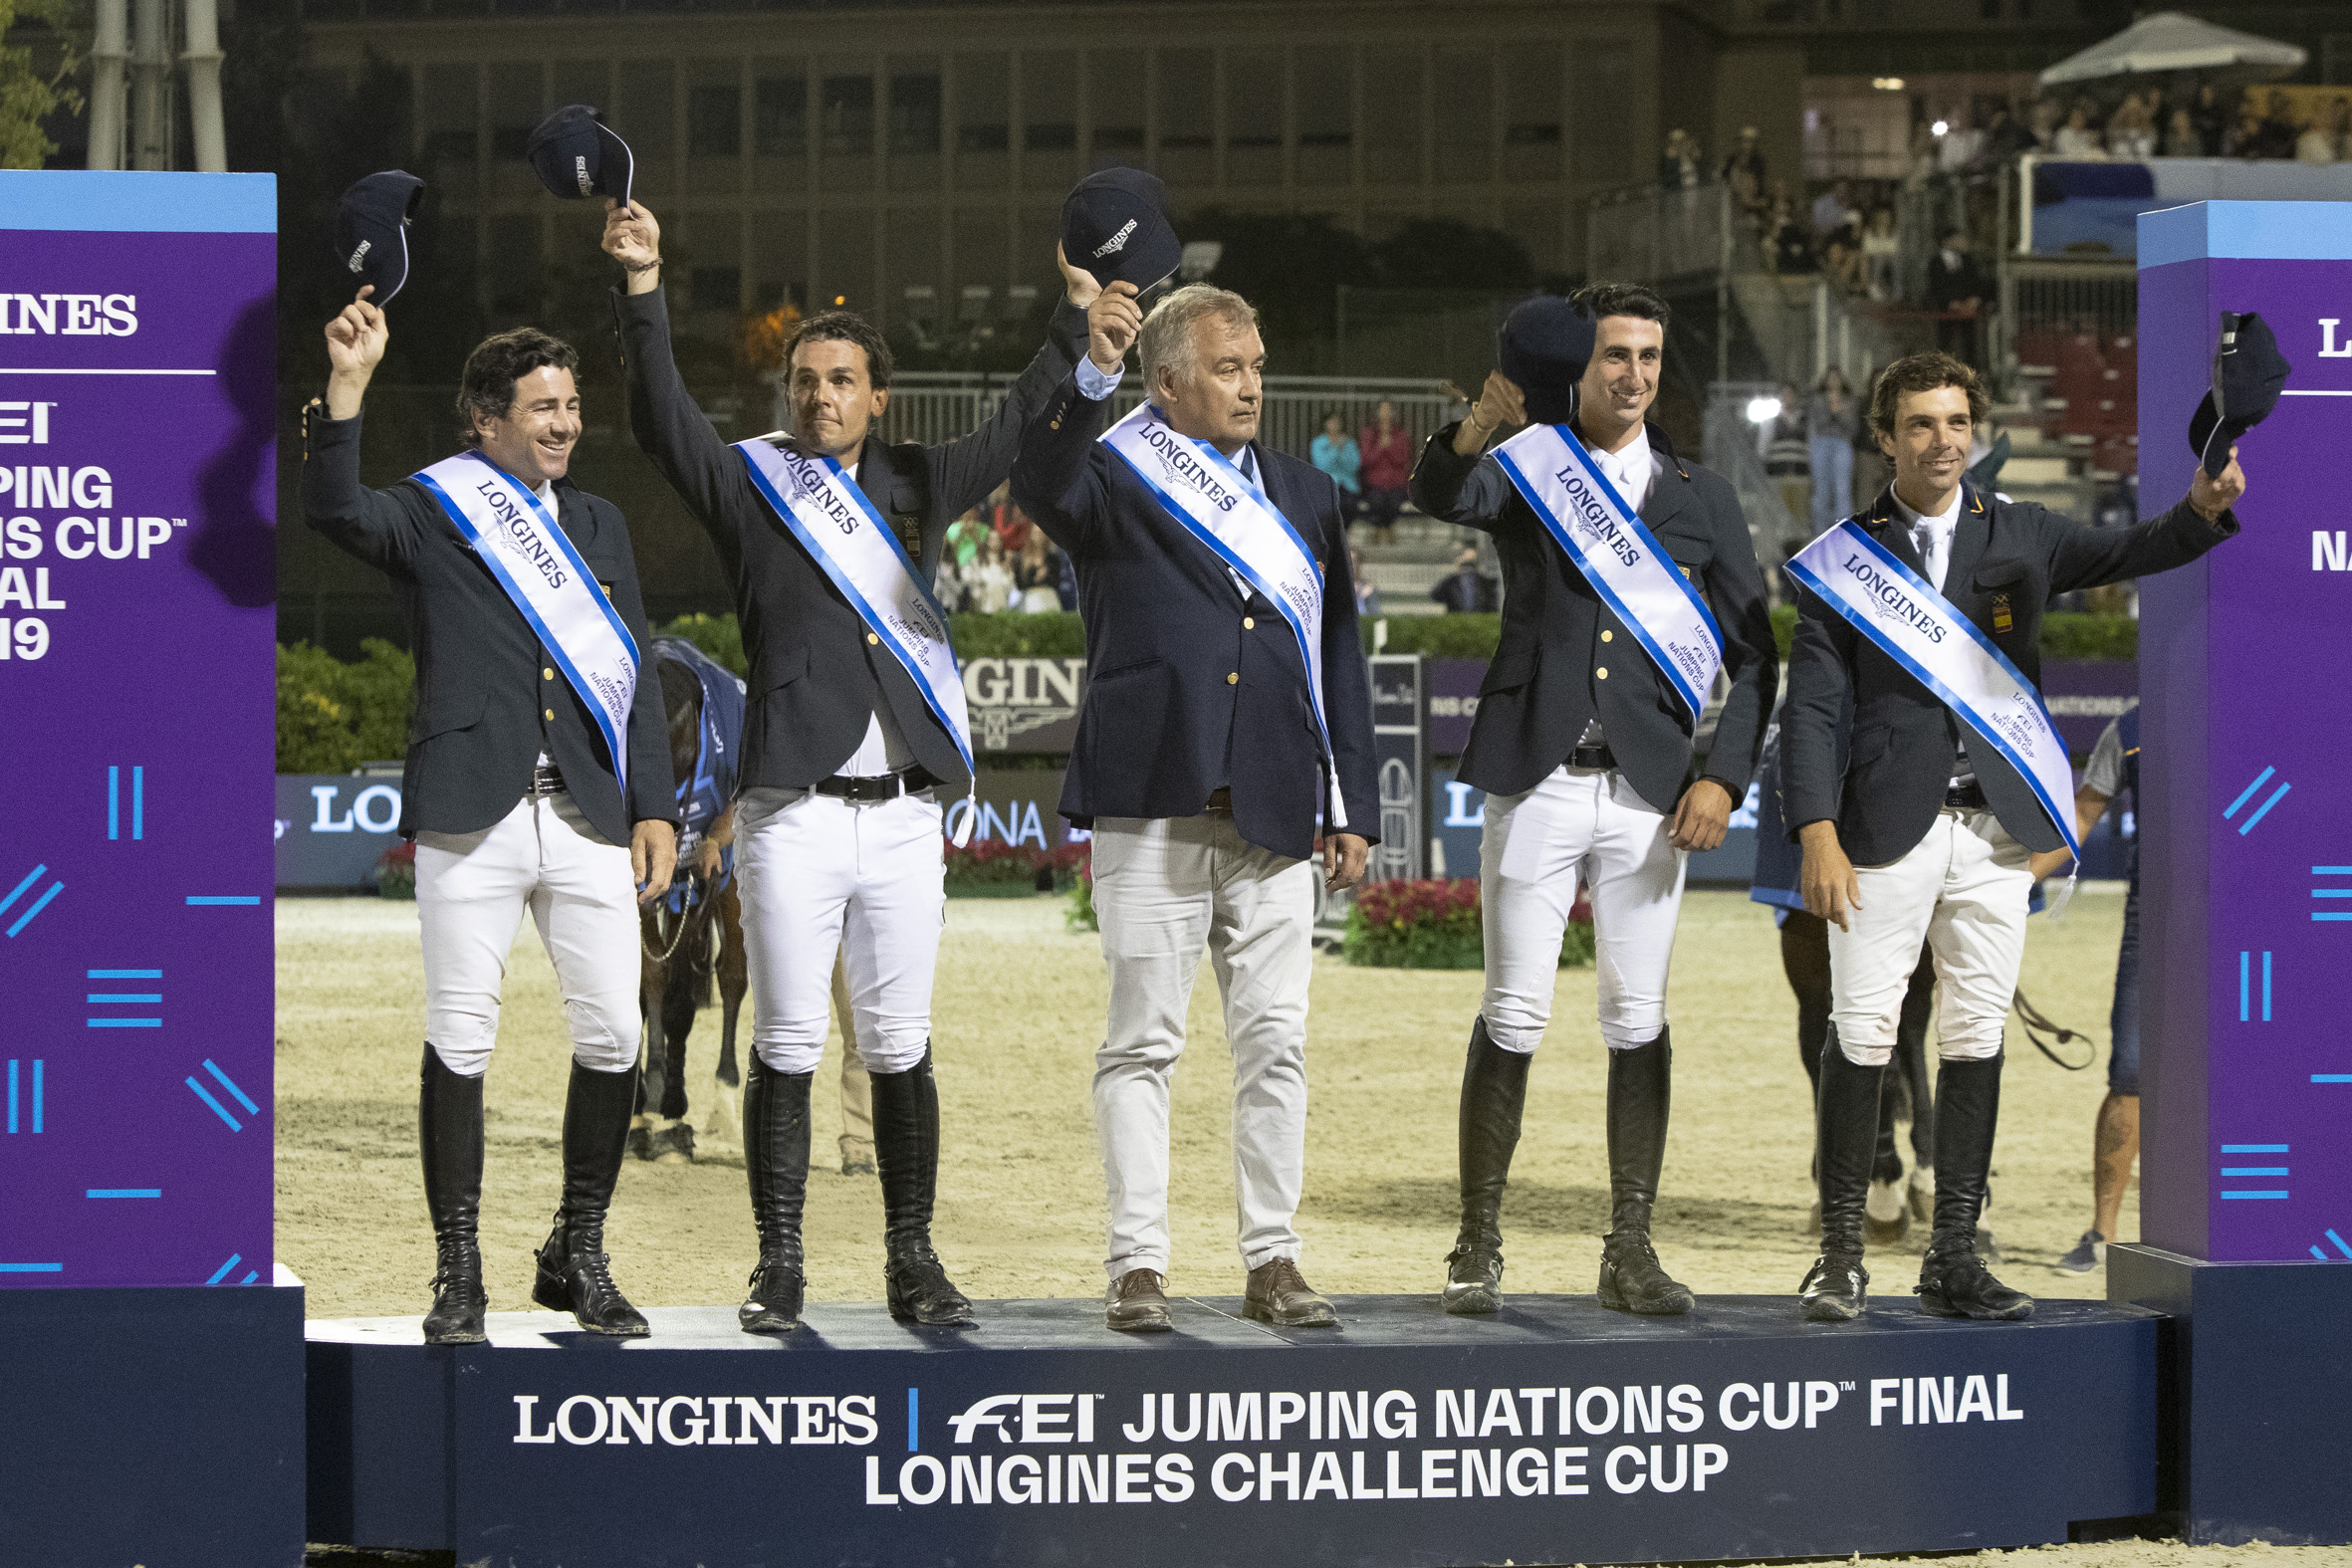 The Longines Challenge Cup stays at home